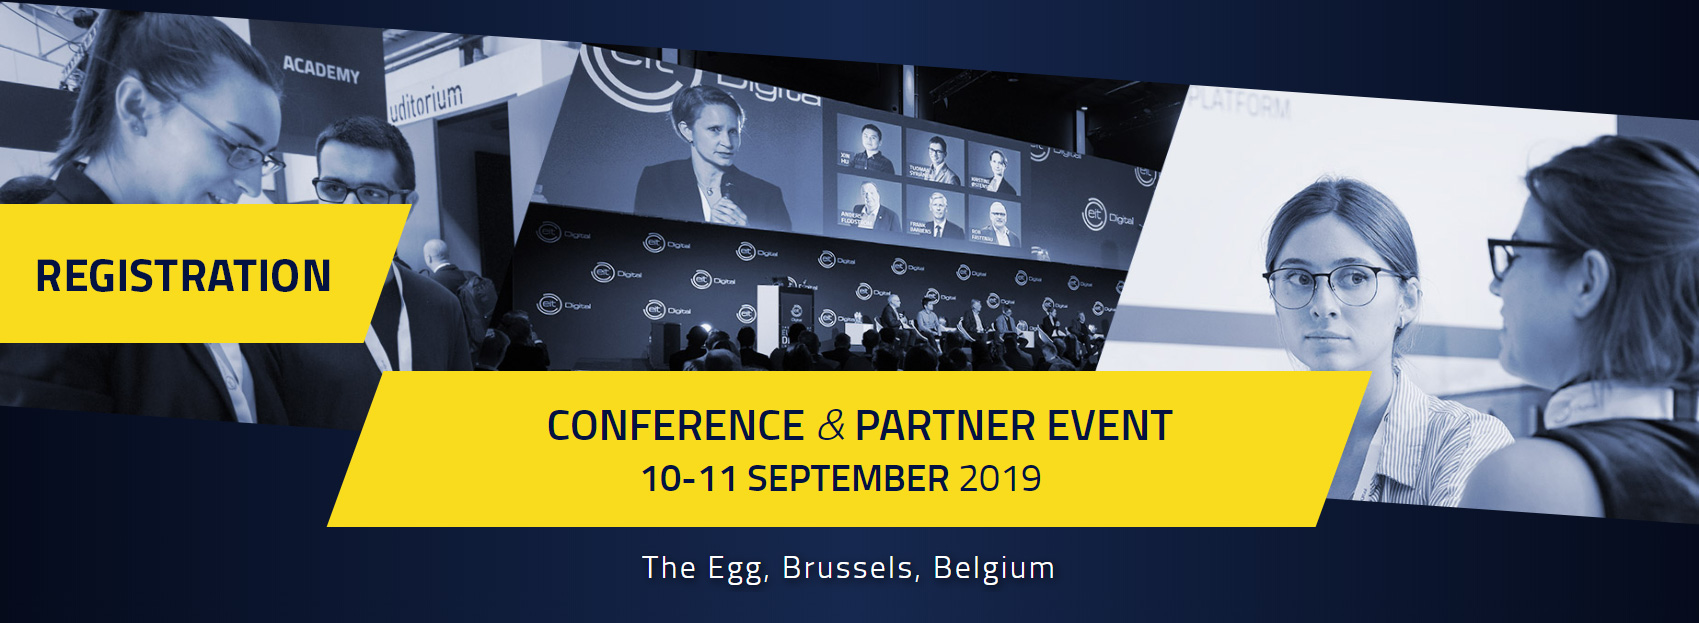 EIT Digital Conference & Partner Event 2019